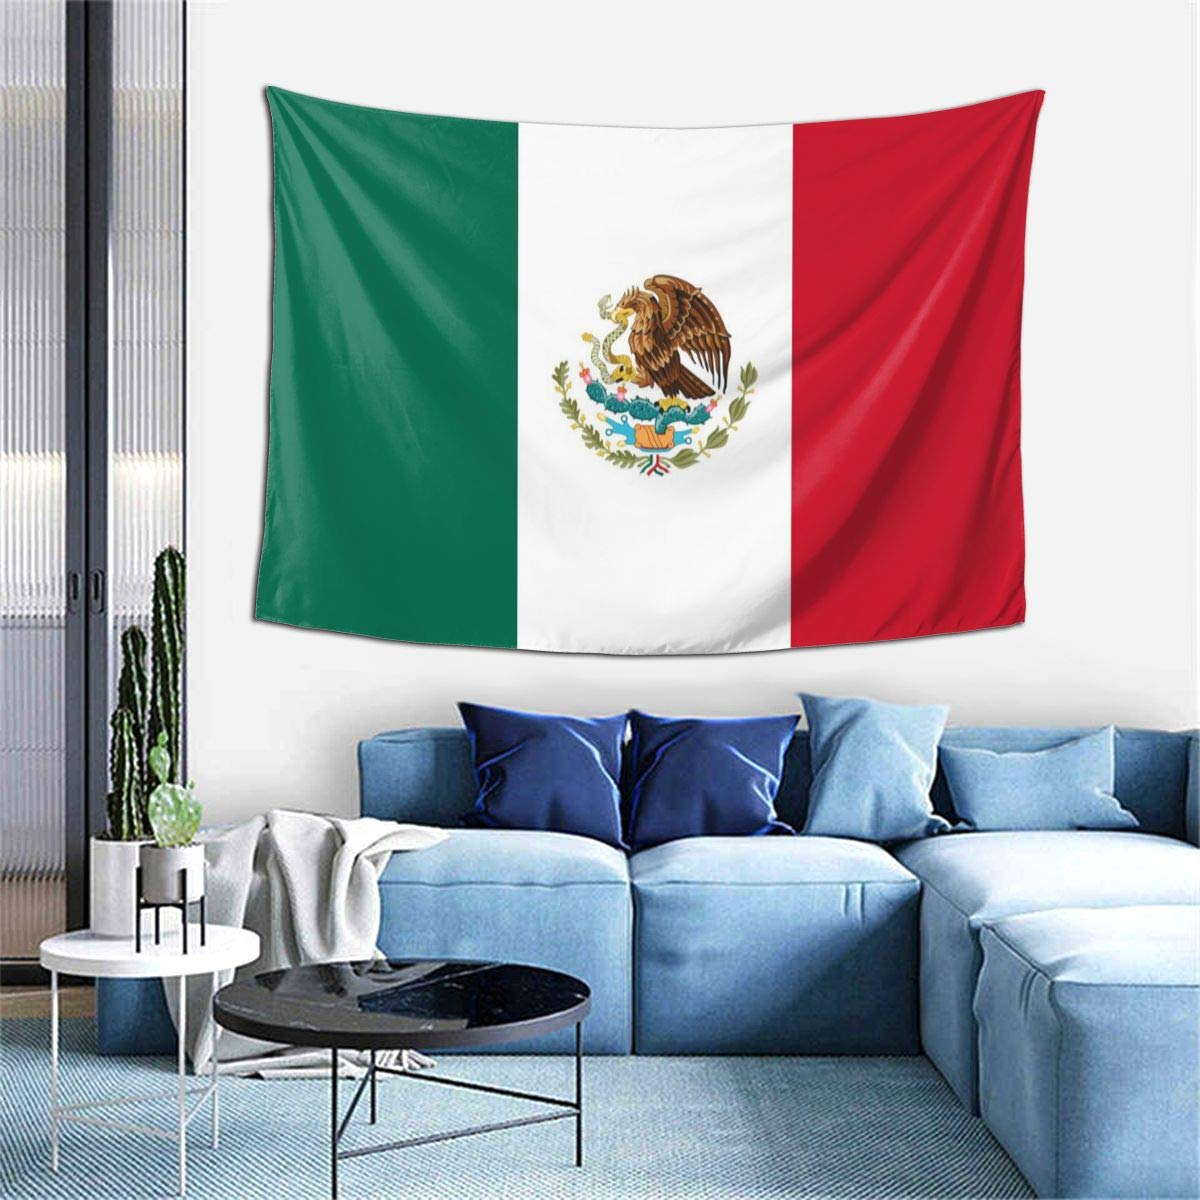 Wall Decoration Tapestry - Mexican Flag Hippie Art Tapestry Wall Hanging - Extra Large Tablecloths 60 X 40 Inch for Bedroom Living Room Dorm Room Home Decor One Size